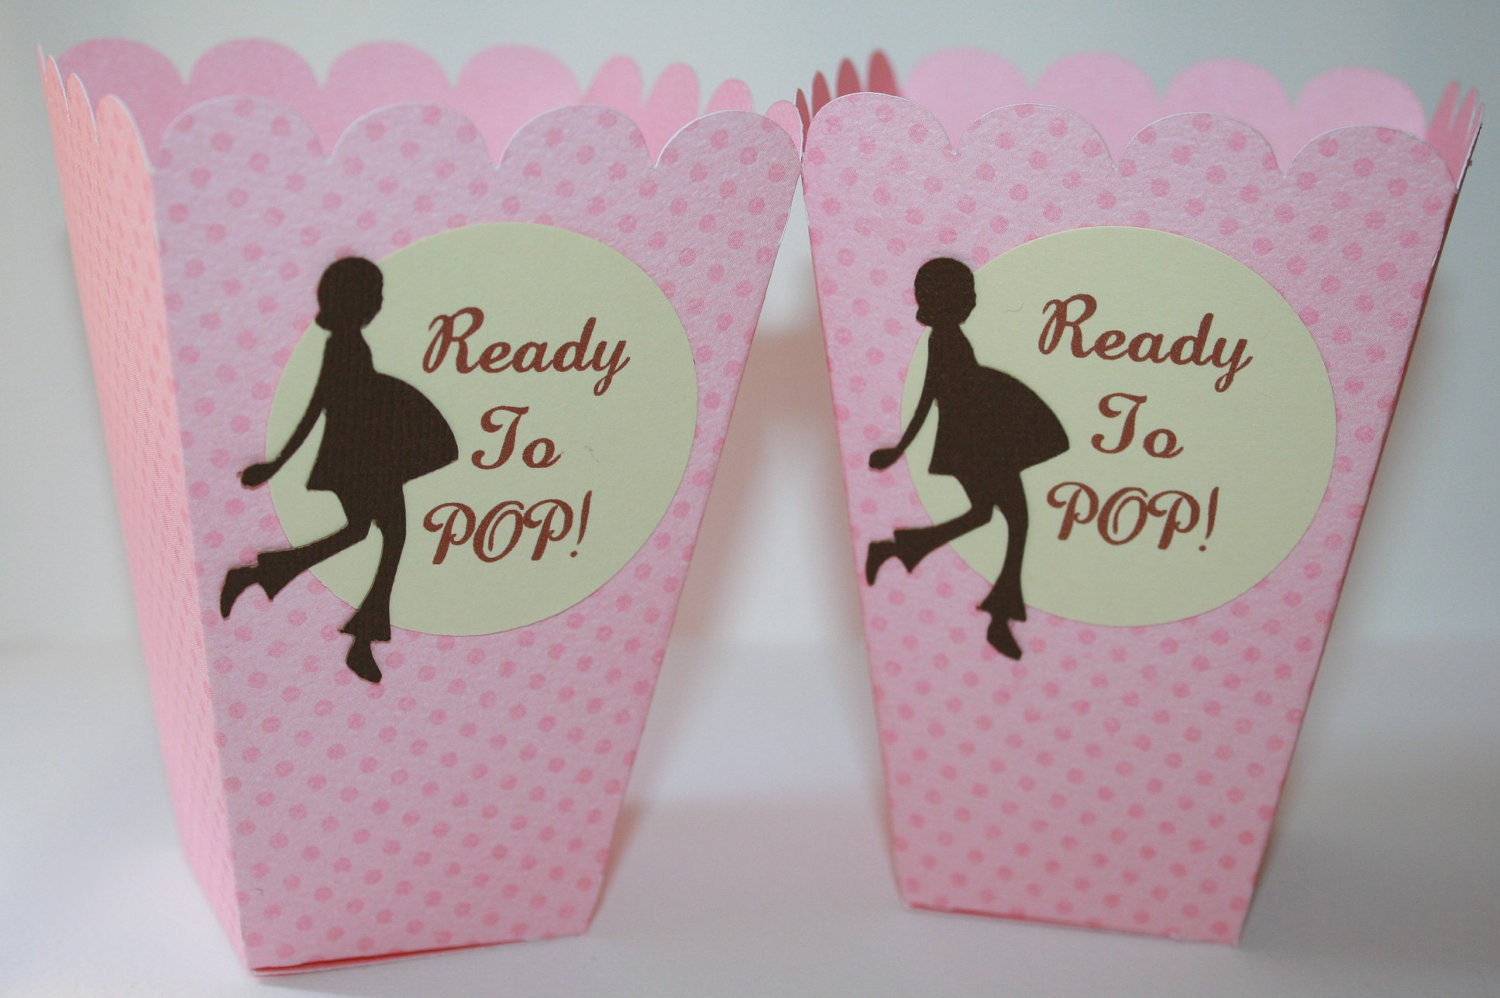 10 popcorn boxes ready to pop choose your by embellishedpaper